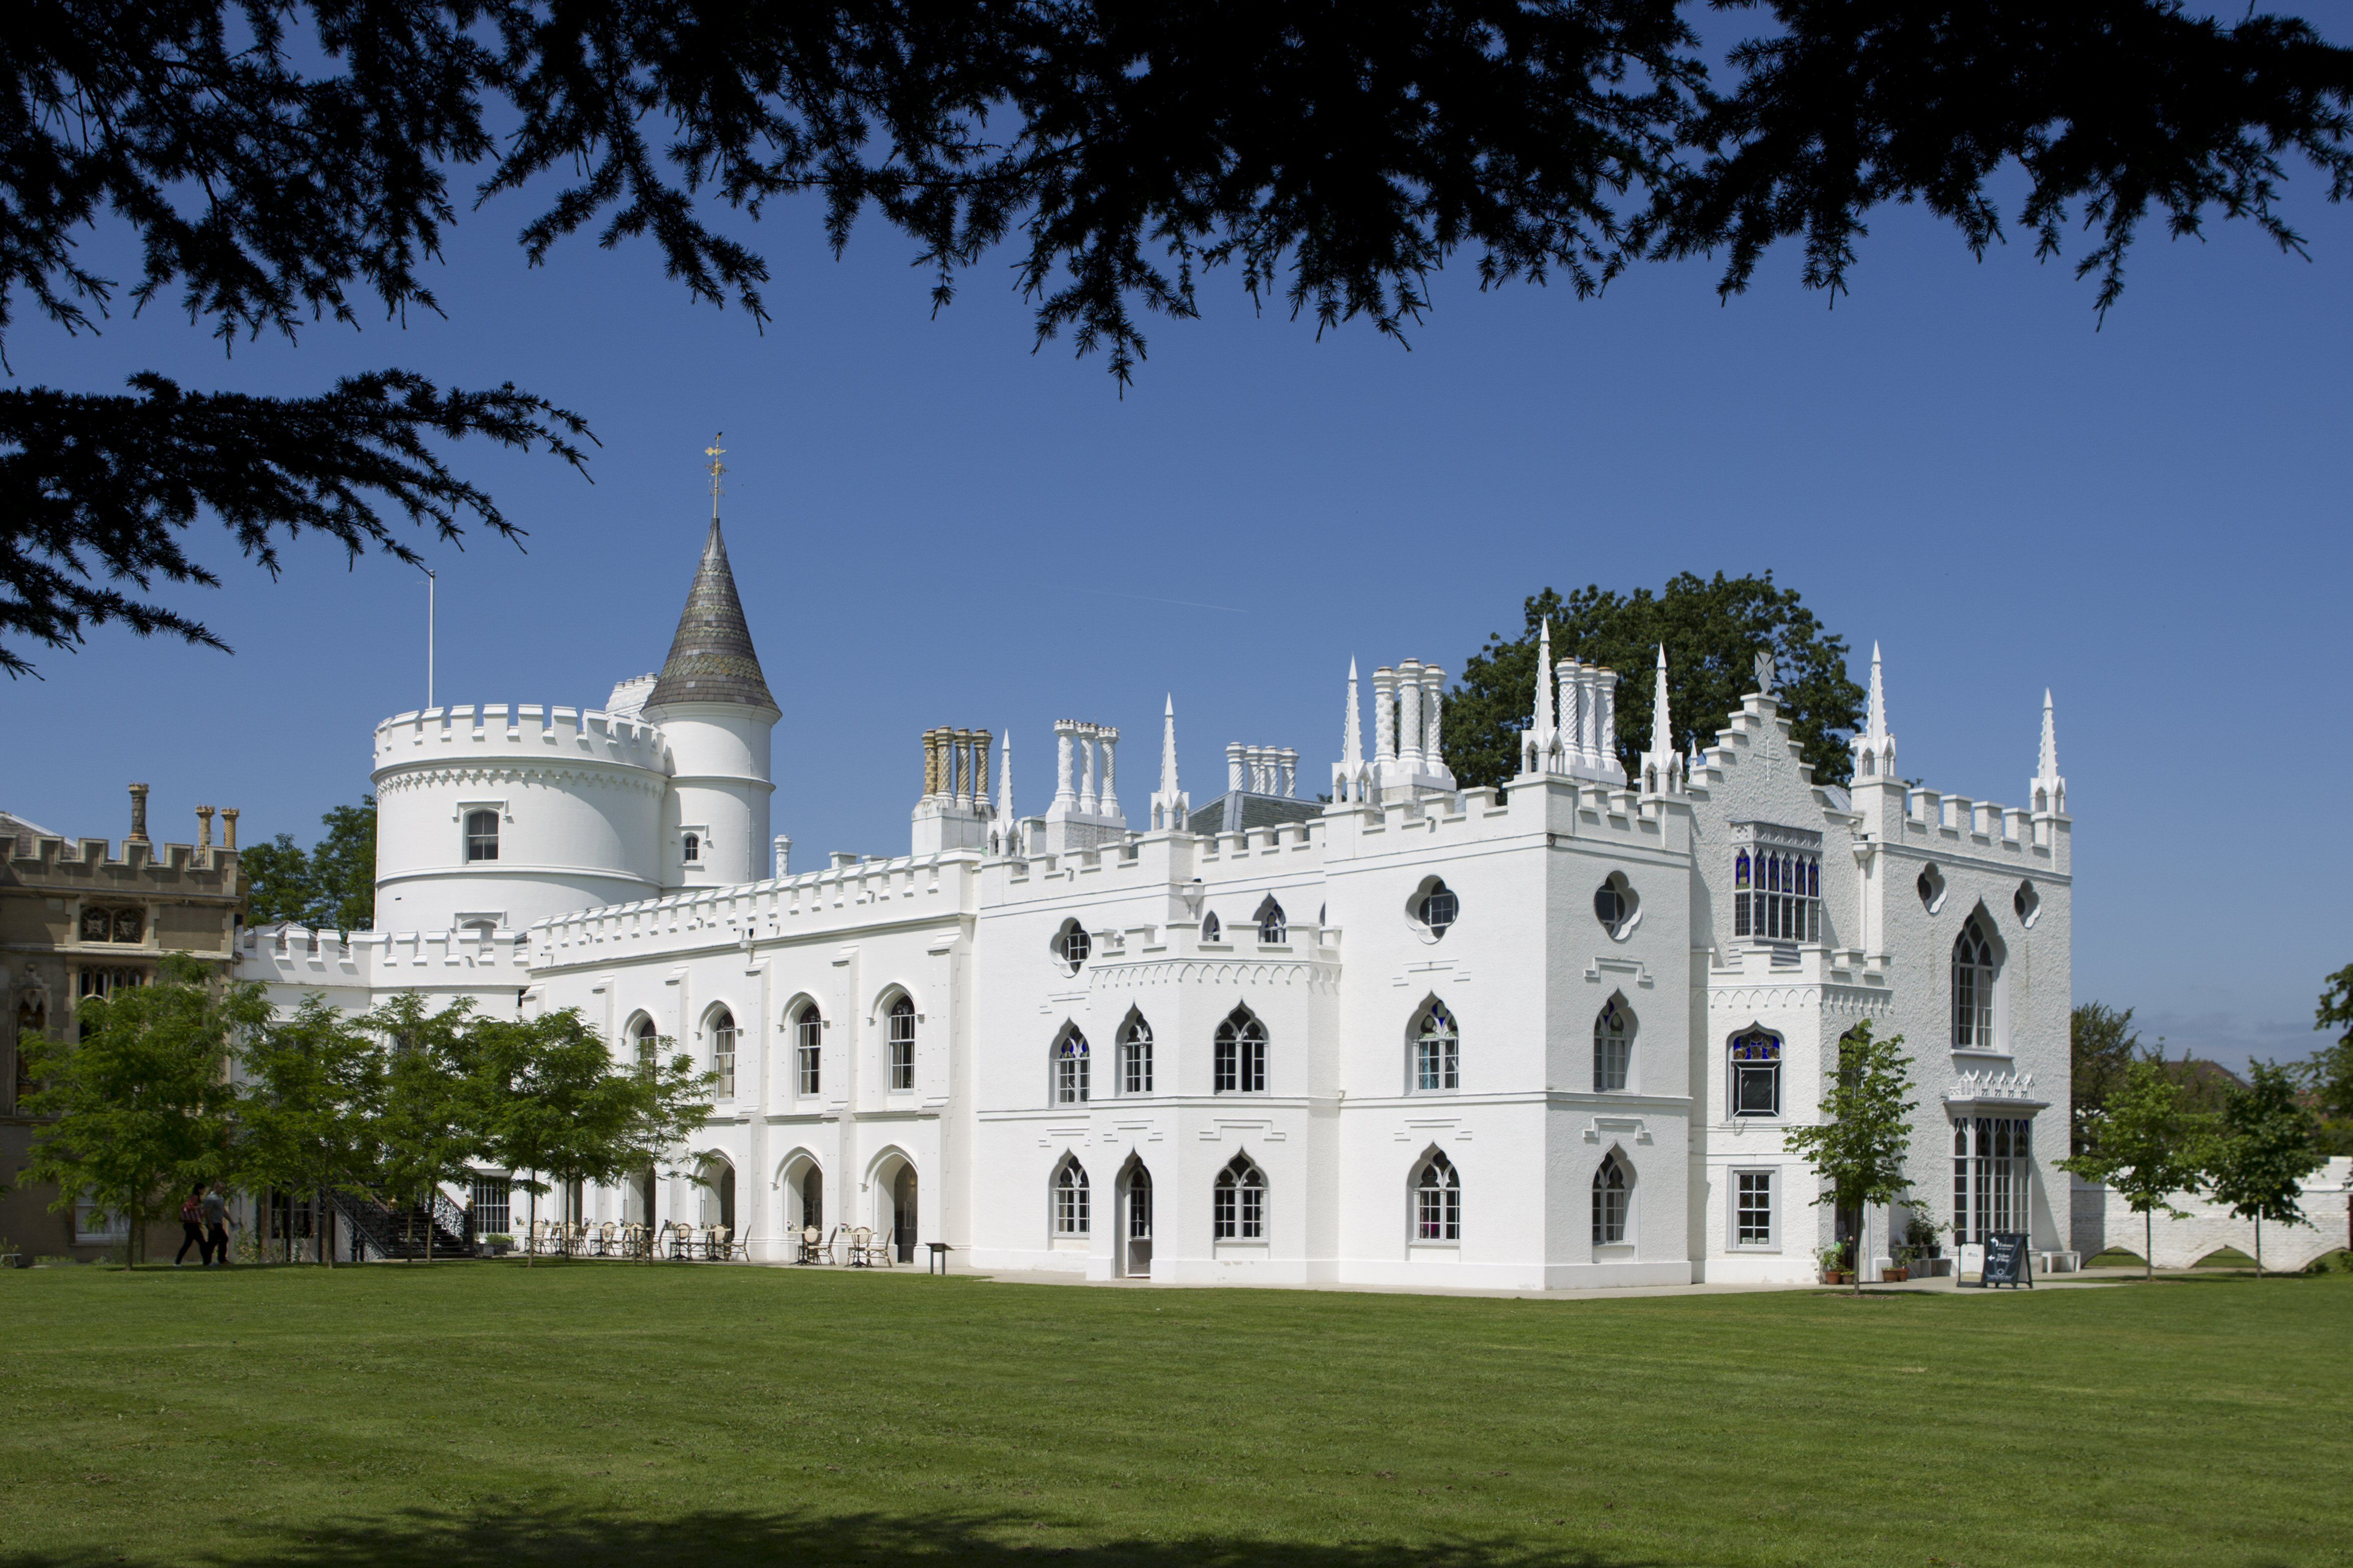 large white castle-like residence with arched windows, parapets, turrets, and crenalation